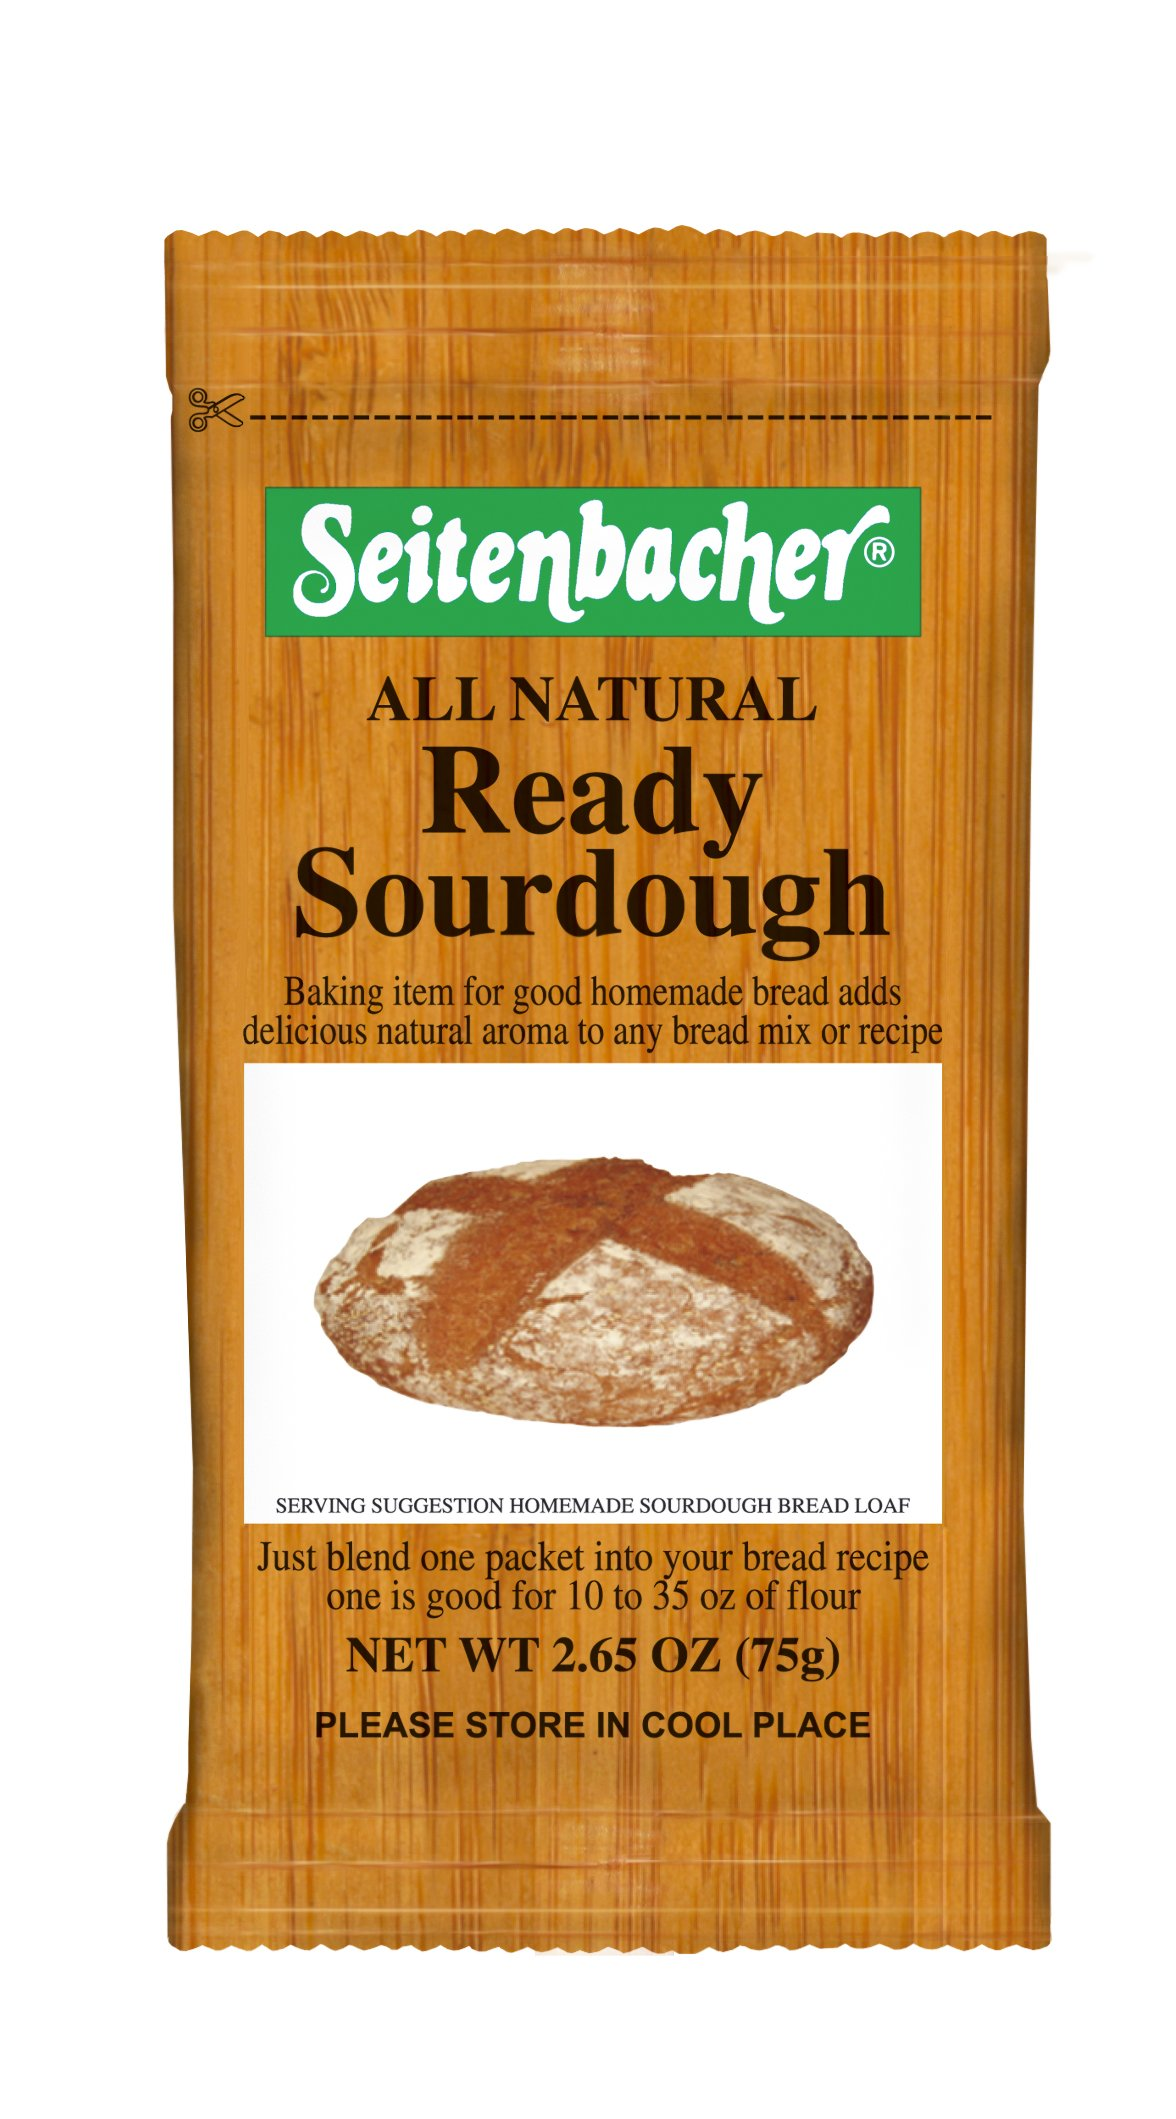 Seitenbacher Natural Ready Sourdough, 2.65-Ounce Bags (Pack of 10) by Seitenbacher